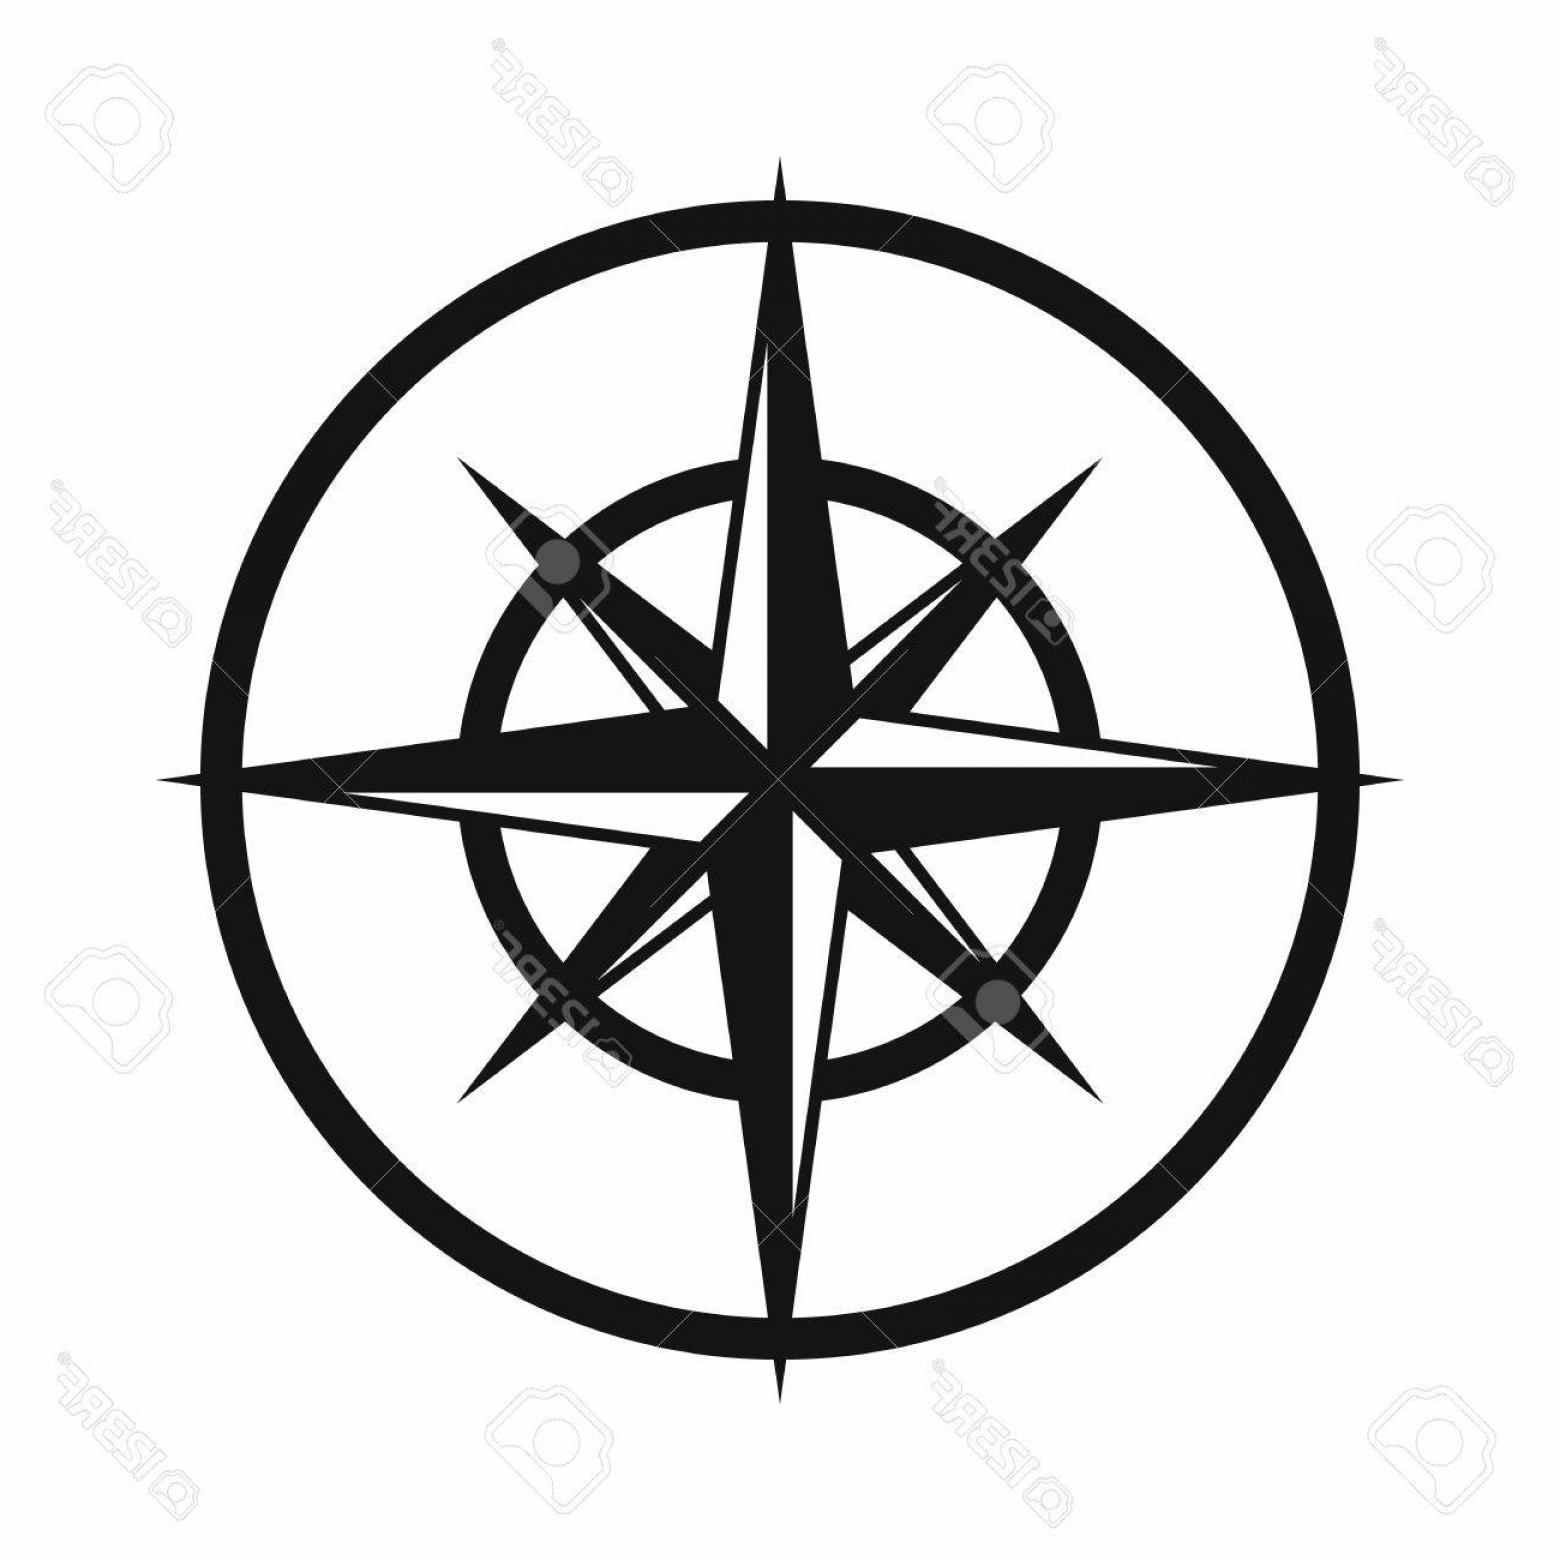 Simple Compass Vector Black And White: Photostock Vector Sign Of Compass To Determine Cardinal Directions Icon In Simple Style Isolated On White Background N